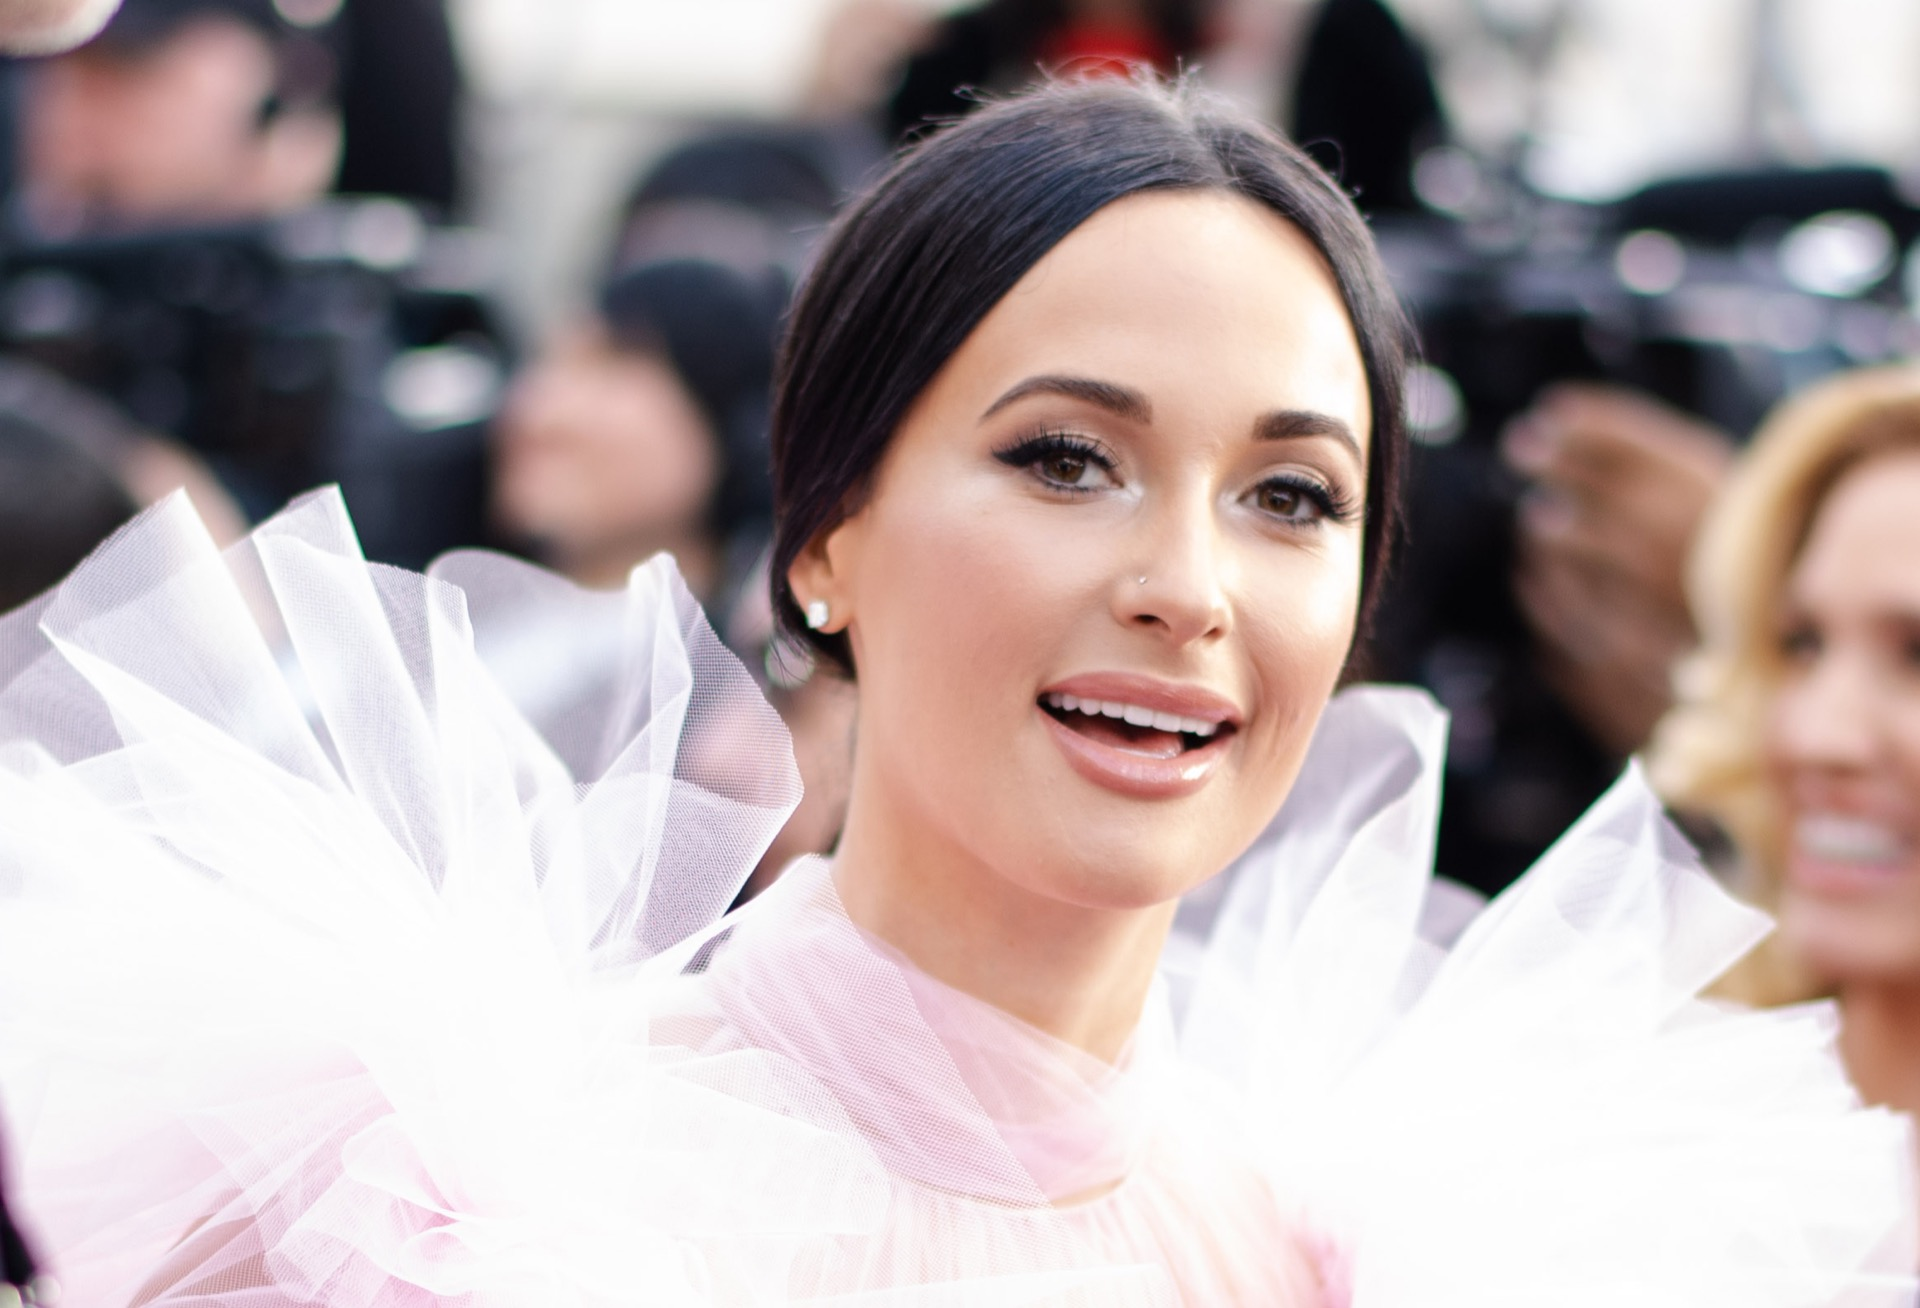 Kacey Musgraves arrives on the red carpet of The 91st Oscars® at the Dolby® Theatre in Hollywood, CA on Sunday, February 24, 2019.